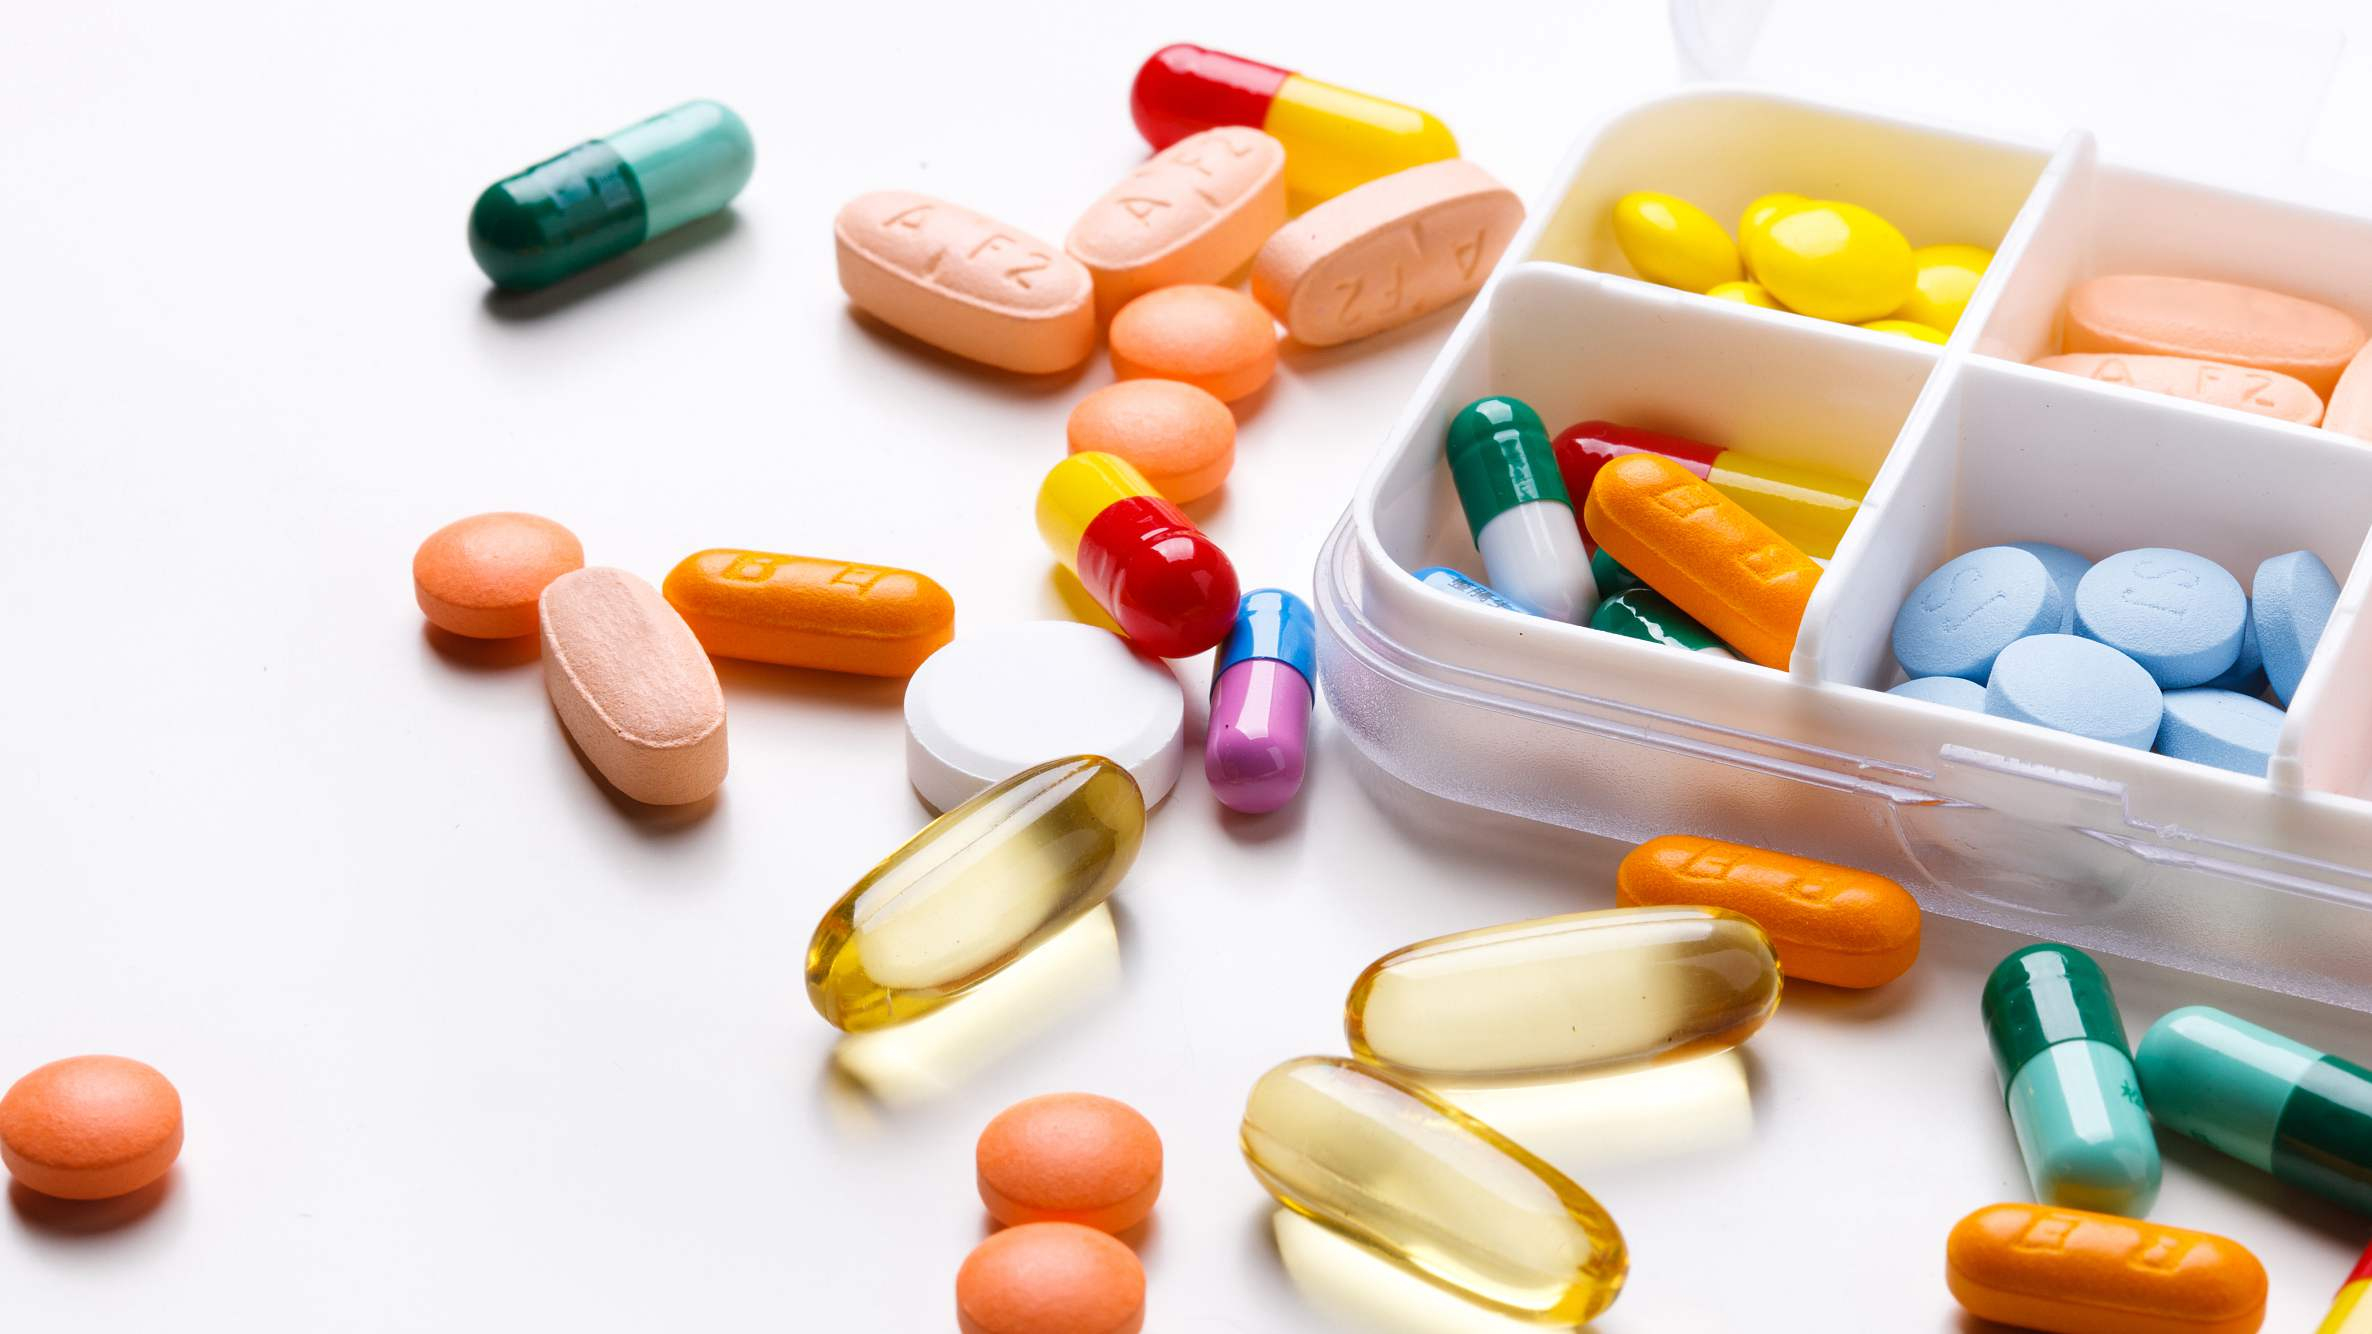 China to accelerate price cuts of anti-cancer drugs